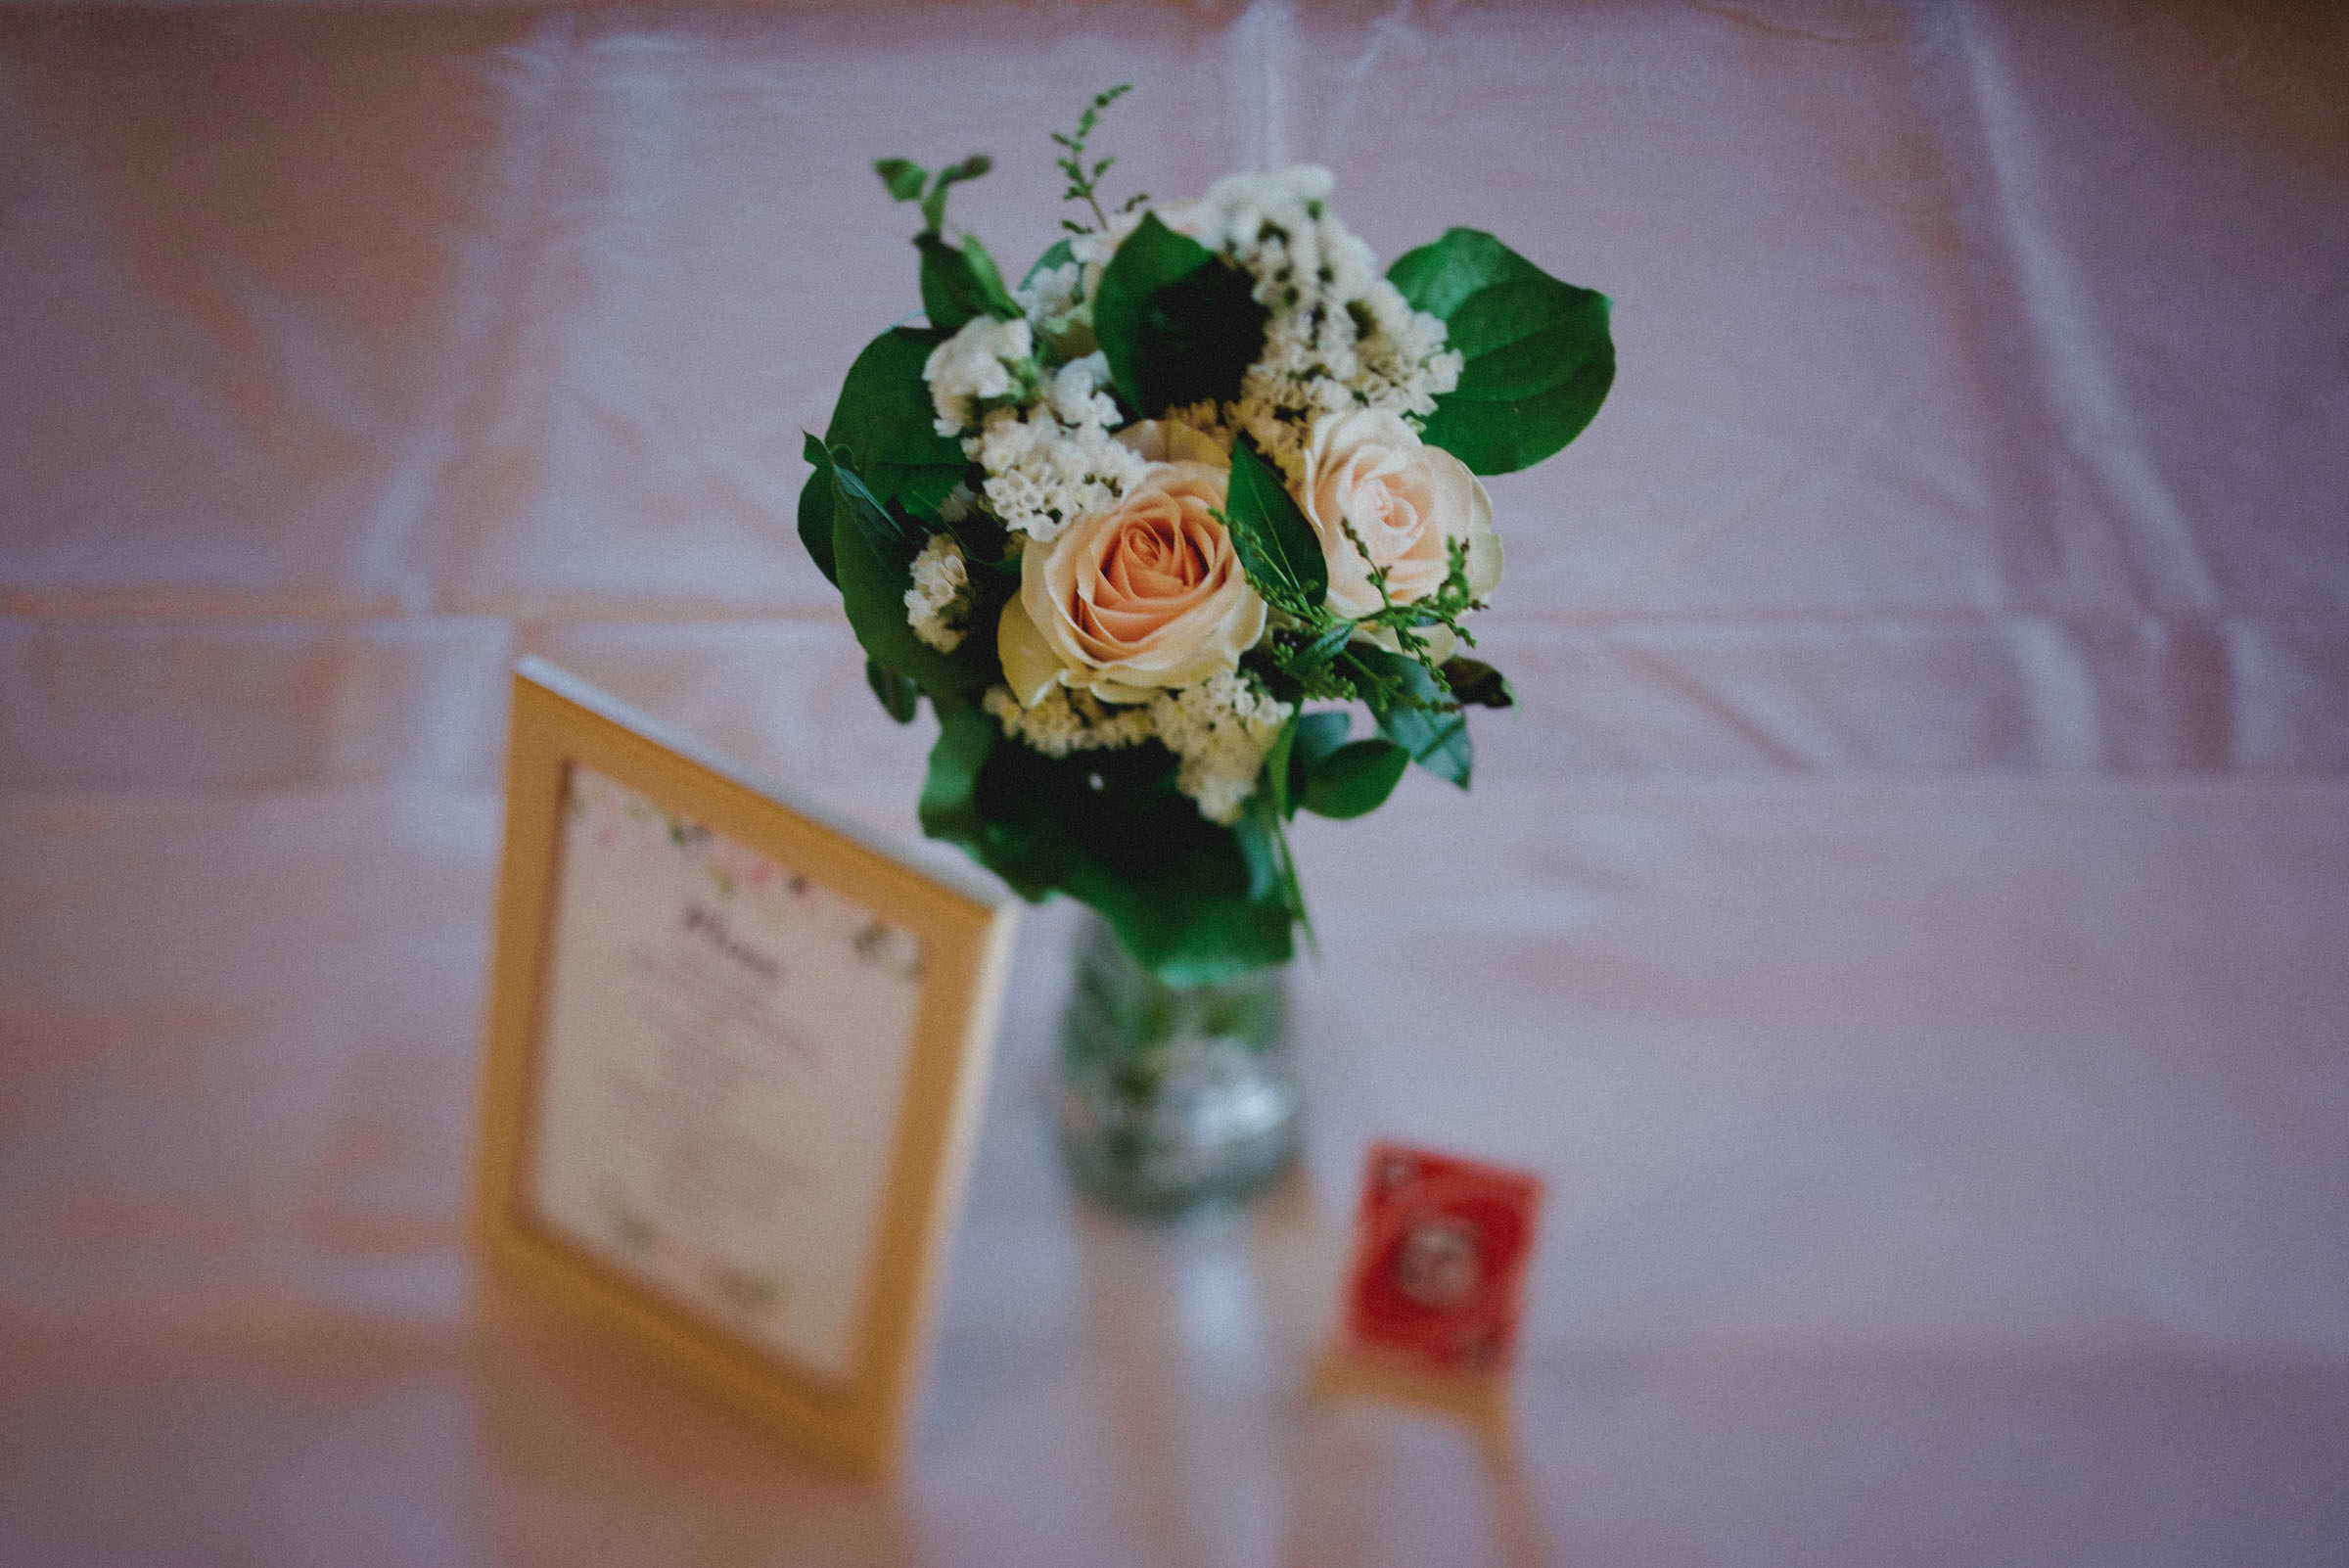 detailed shot of flowers on a table